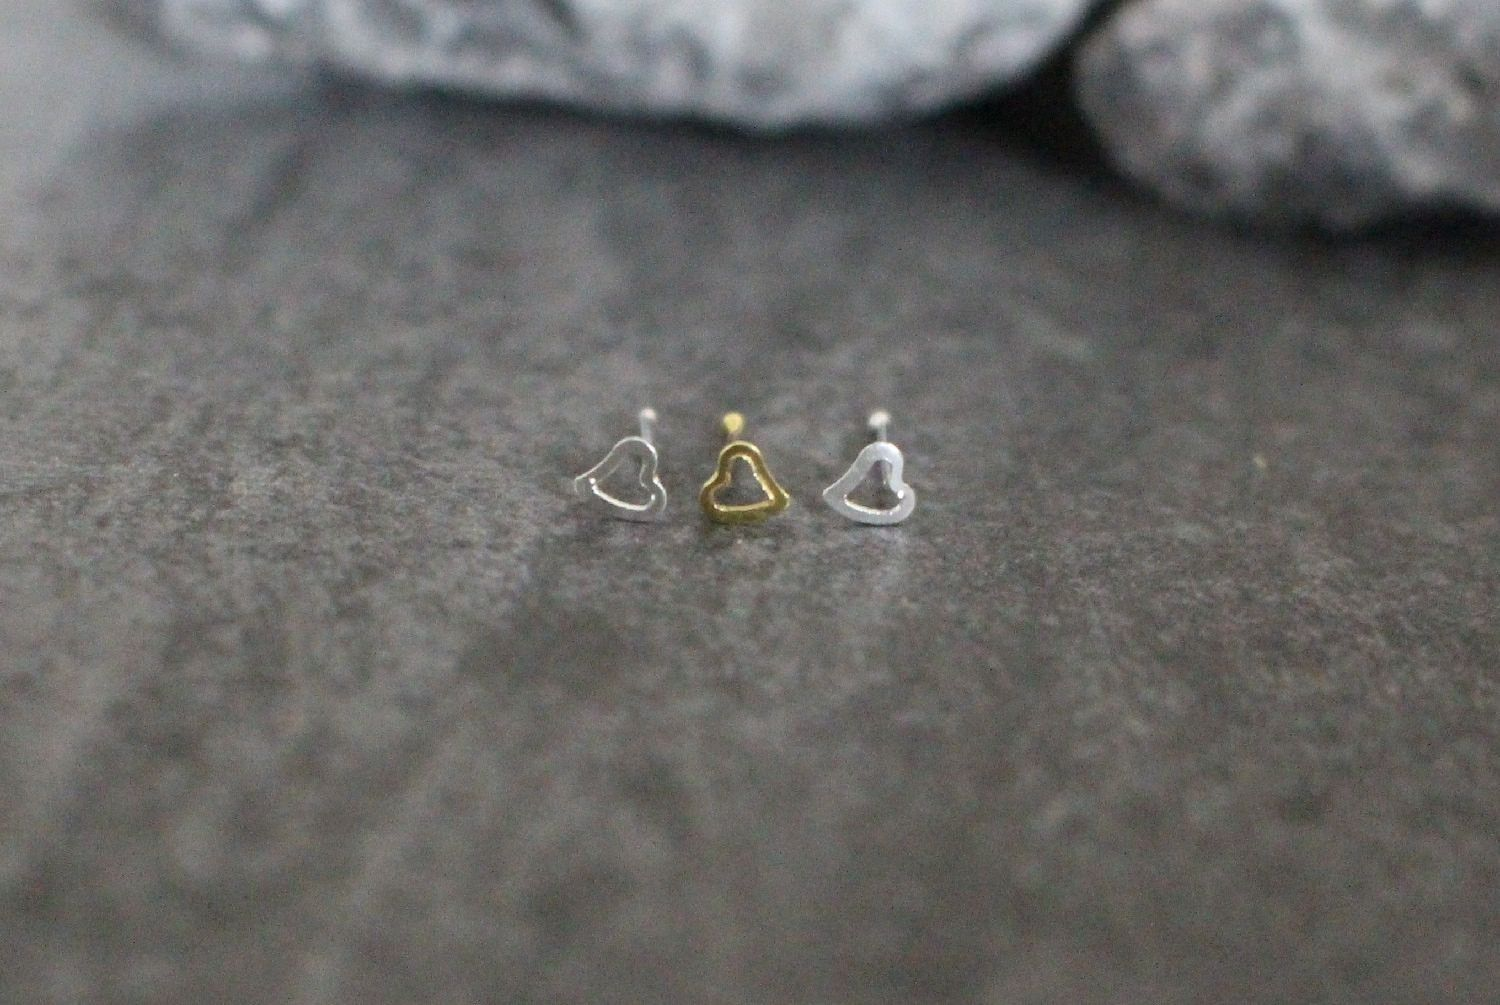 Messed up nose piercing  Heart Nose Stud in Gold  Products  Pinterest  Nose bones Nose